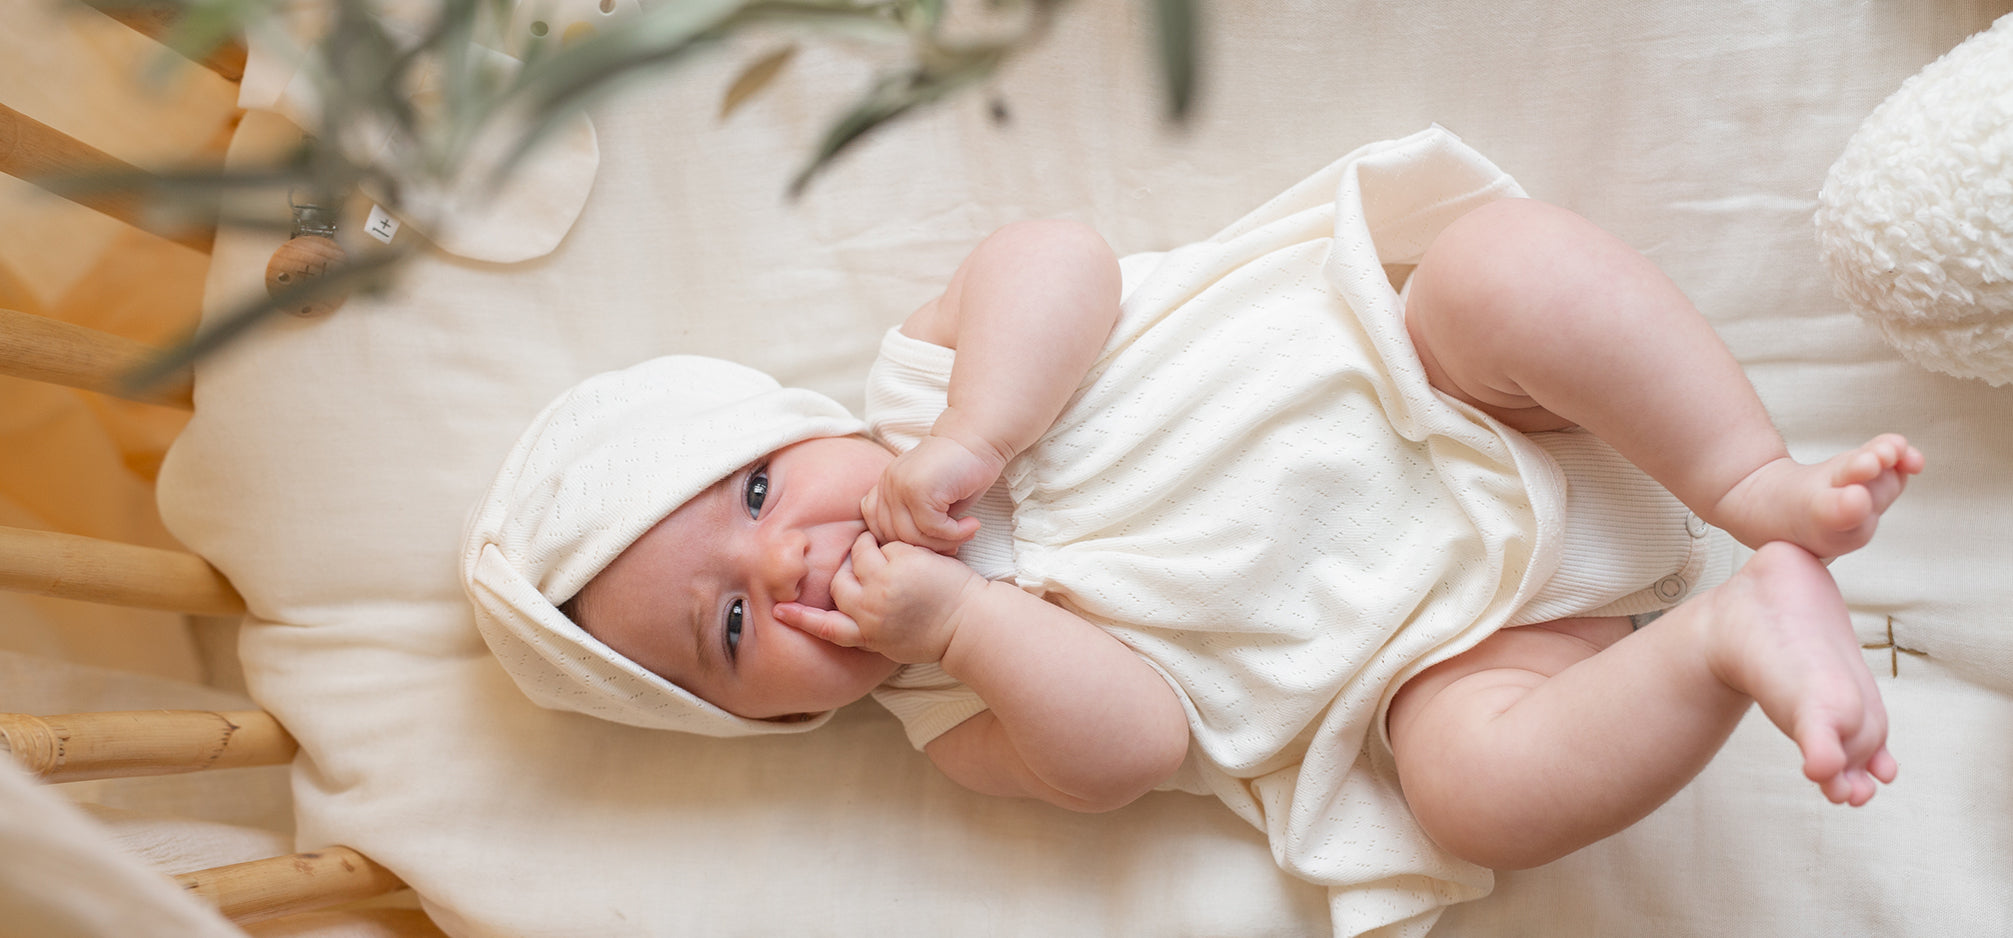 A baby laying in a crib wearing a cream dress and matching bonnet.